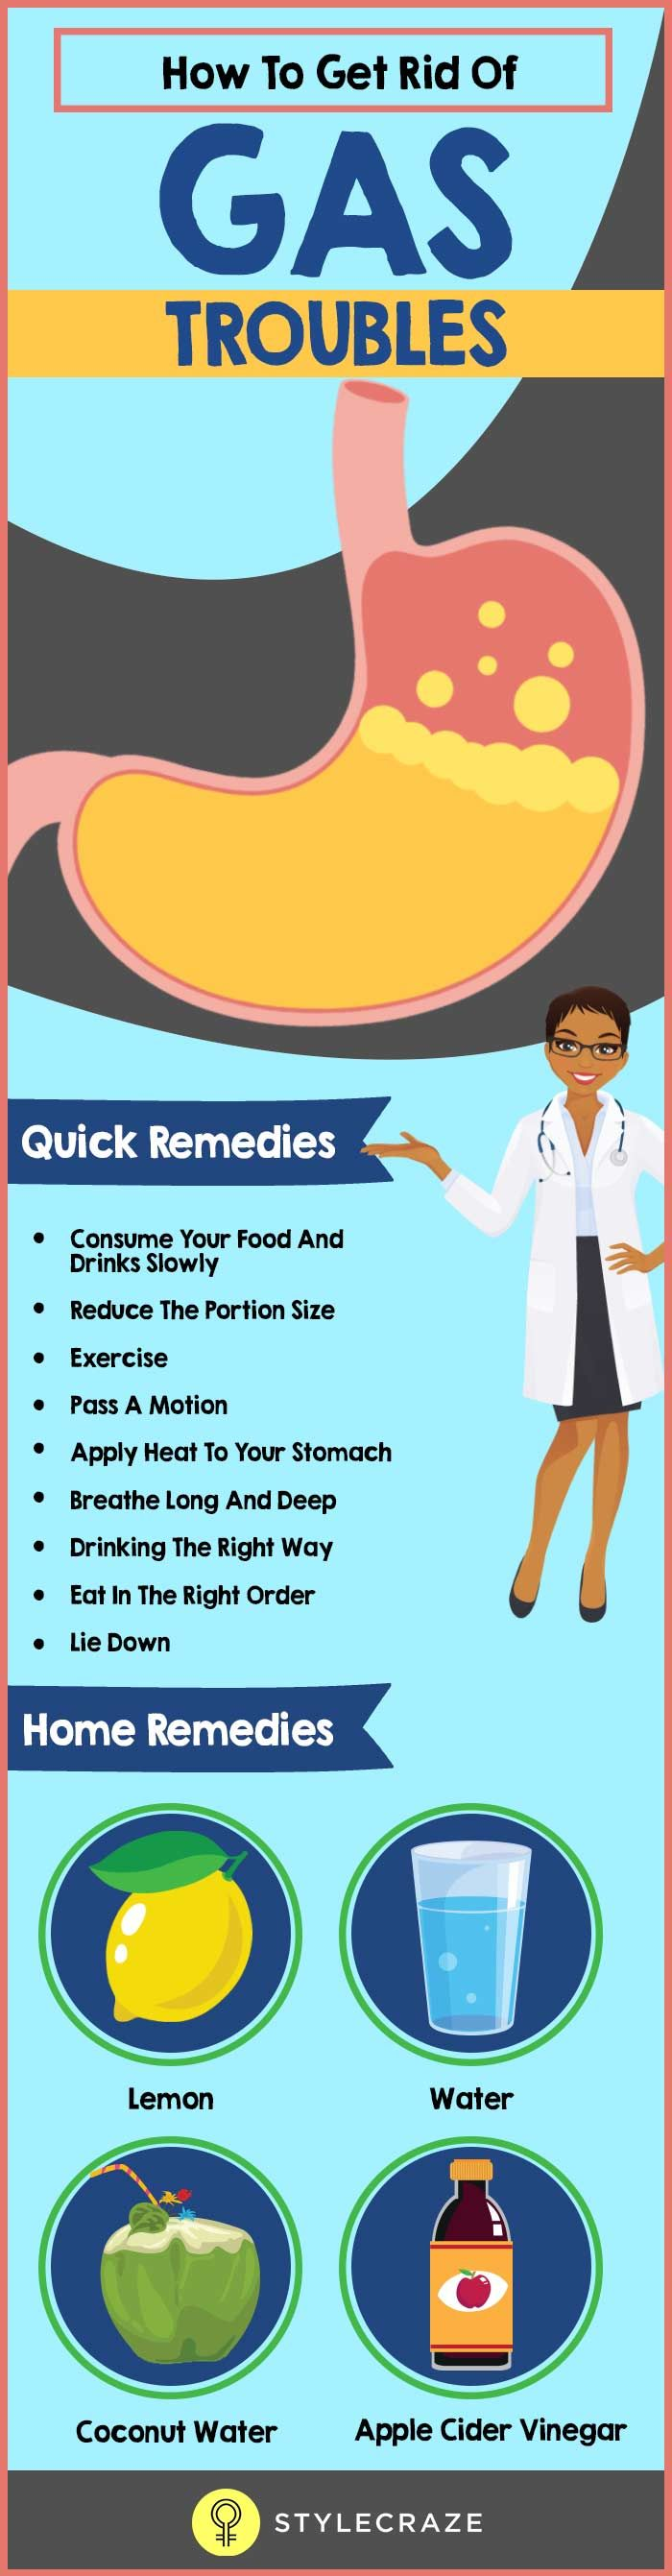 We all love to eat spicy and delicious food. Sometimes, we overeat, and this results in stomach pain and bloating. Does this mean that you will stop eating? Well, there is no need for that since there are many home remedies that can solve gas, heartburn, and bloating.